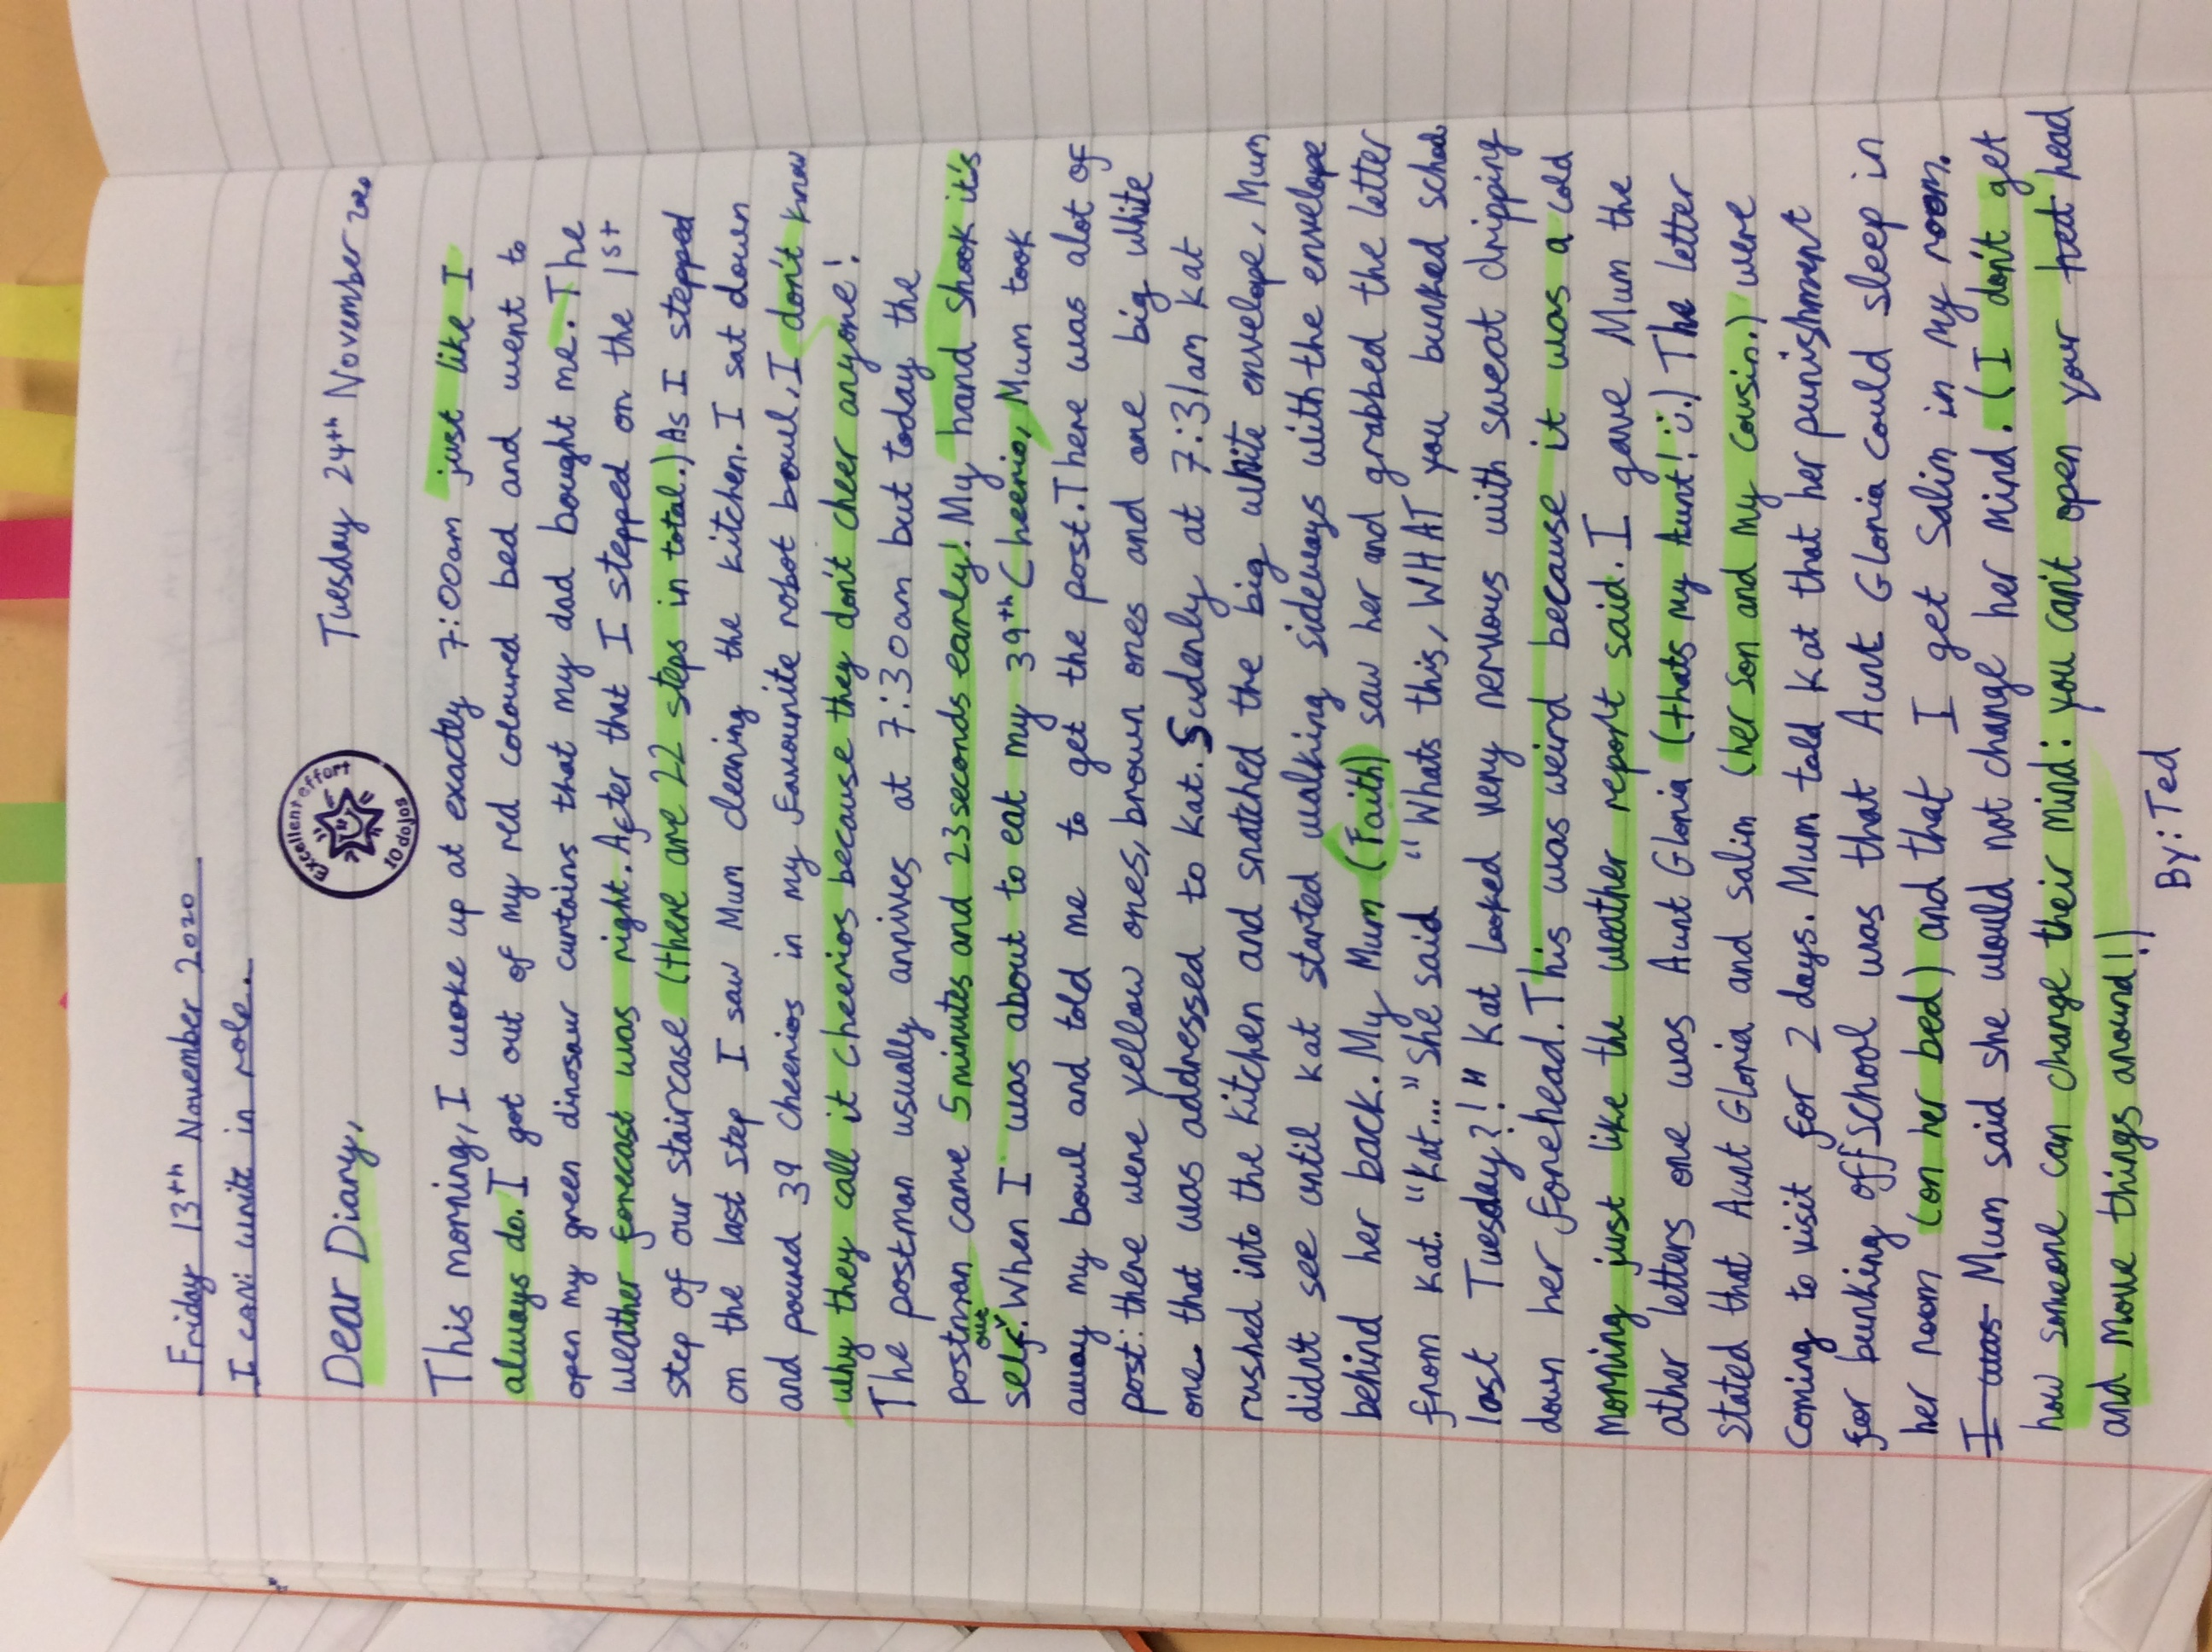 Sosan's fantastic writing!